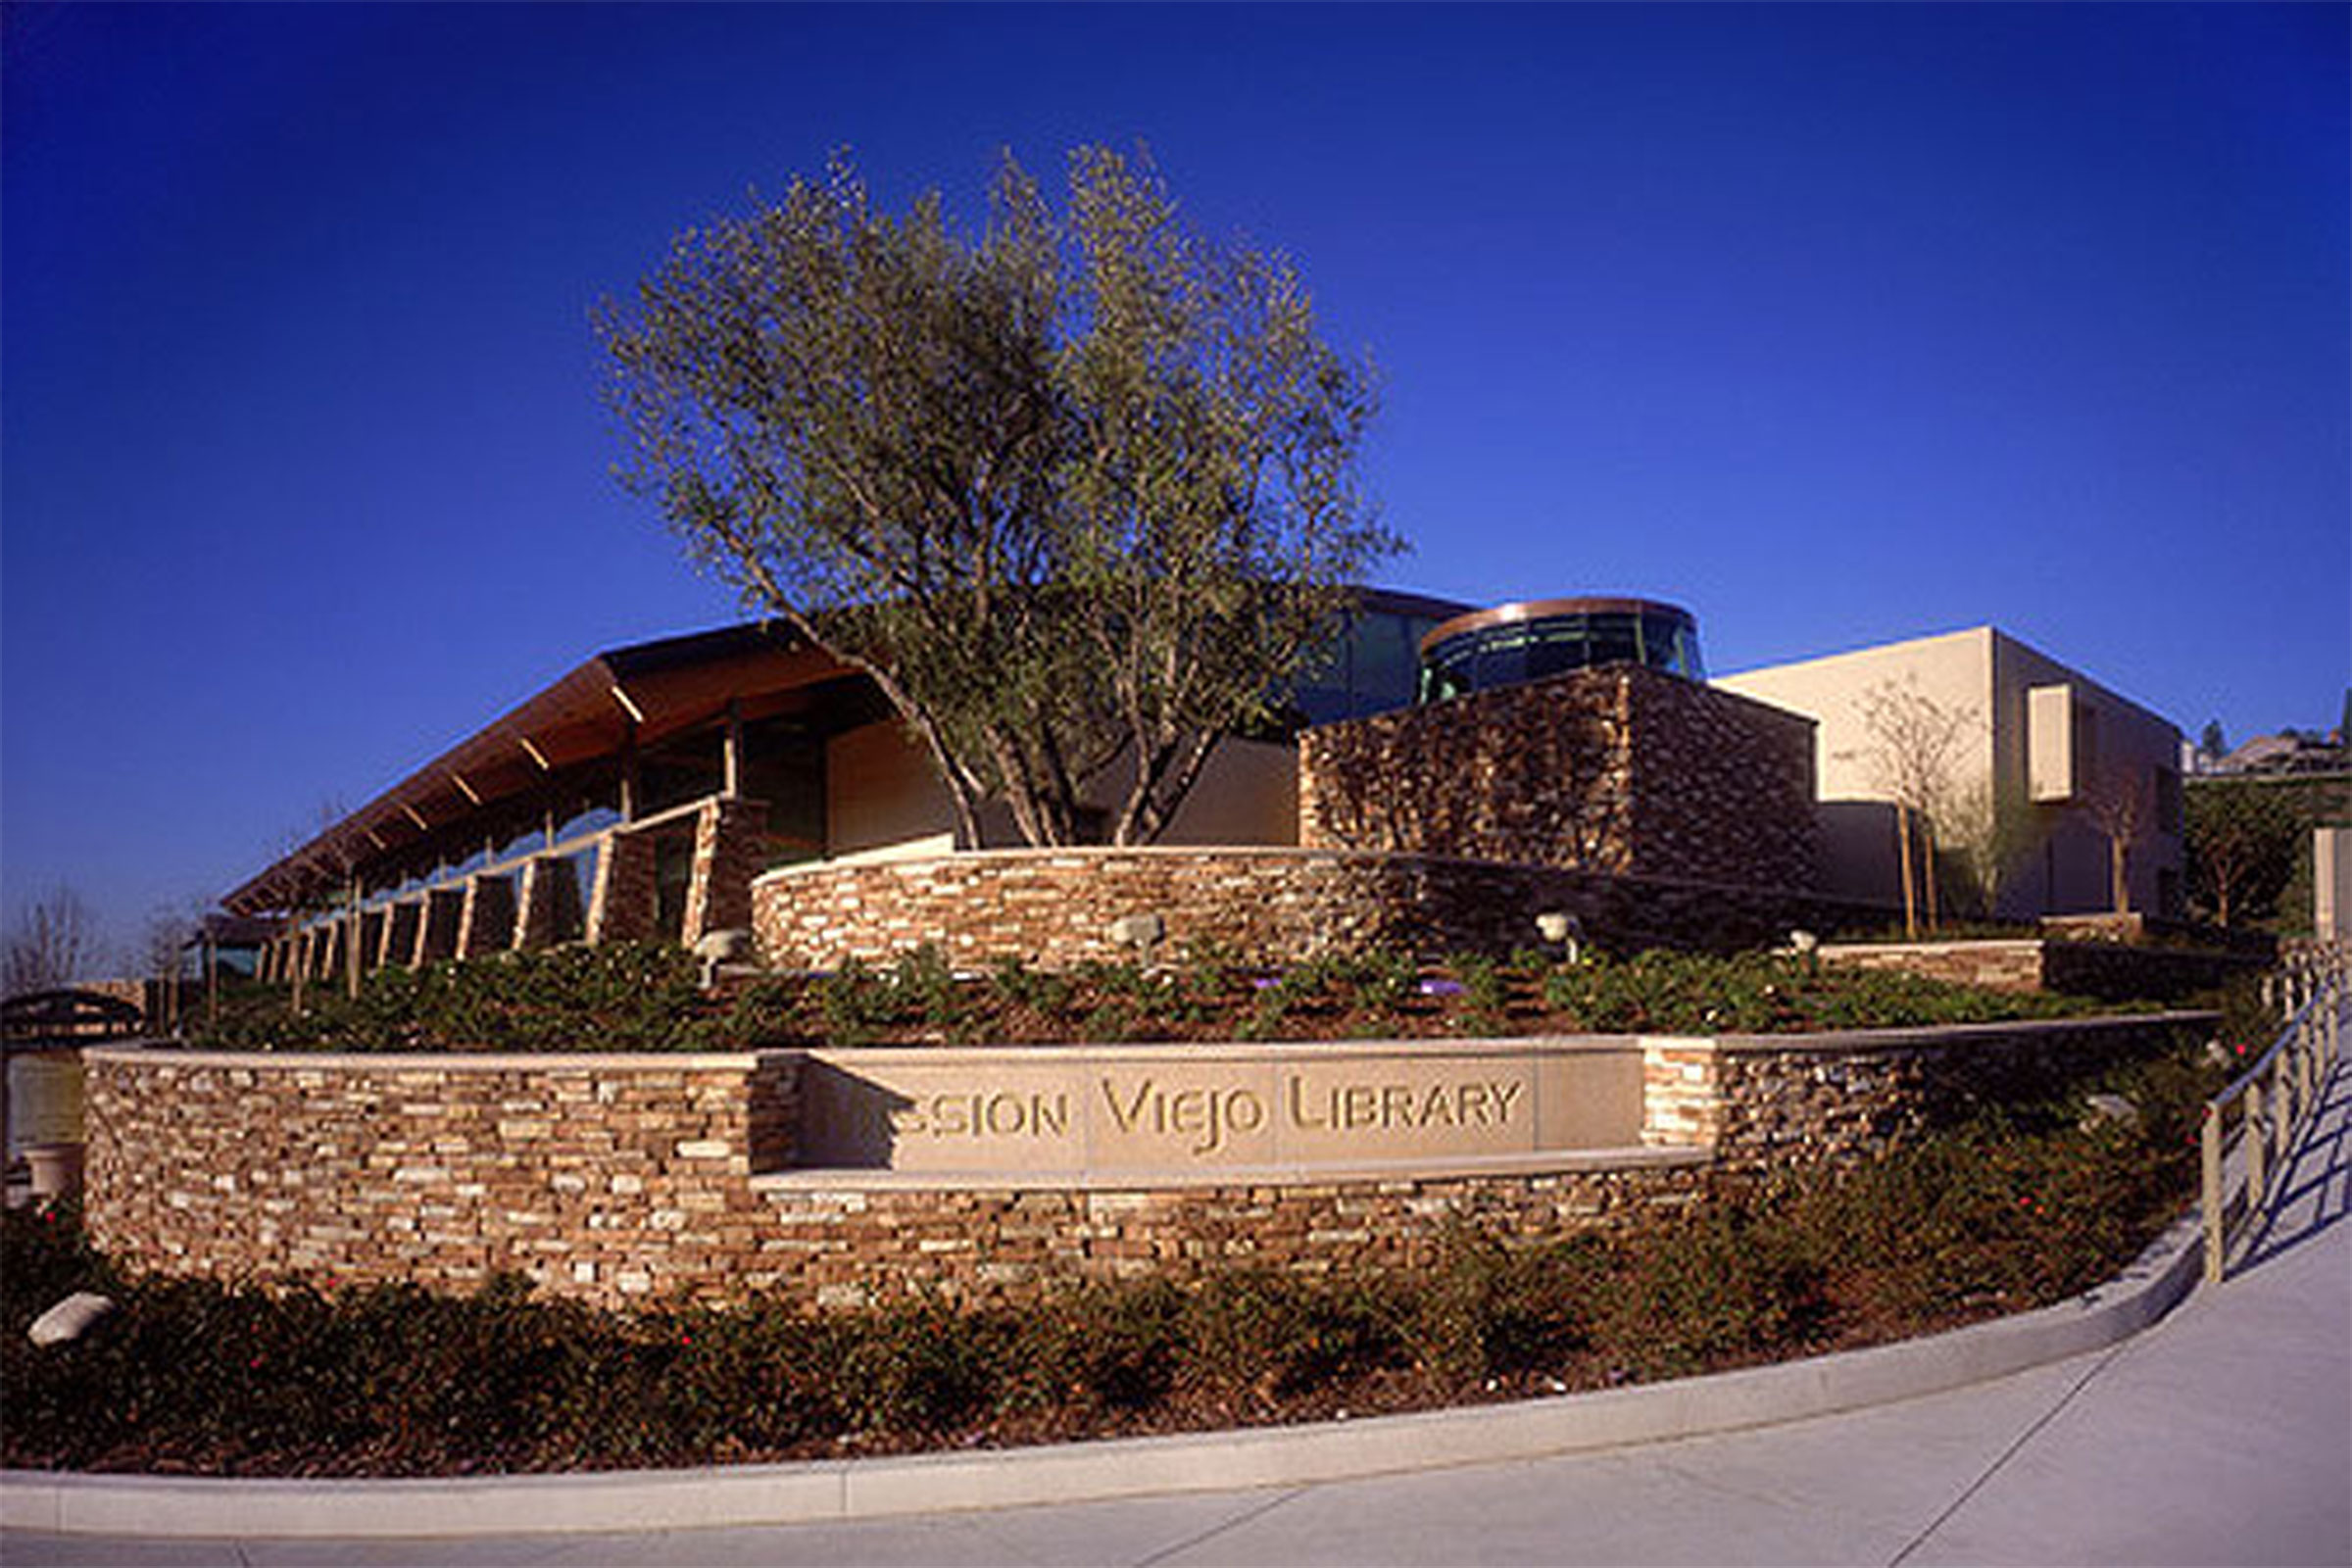 MISSION VIEJO LIBRARY05